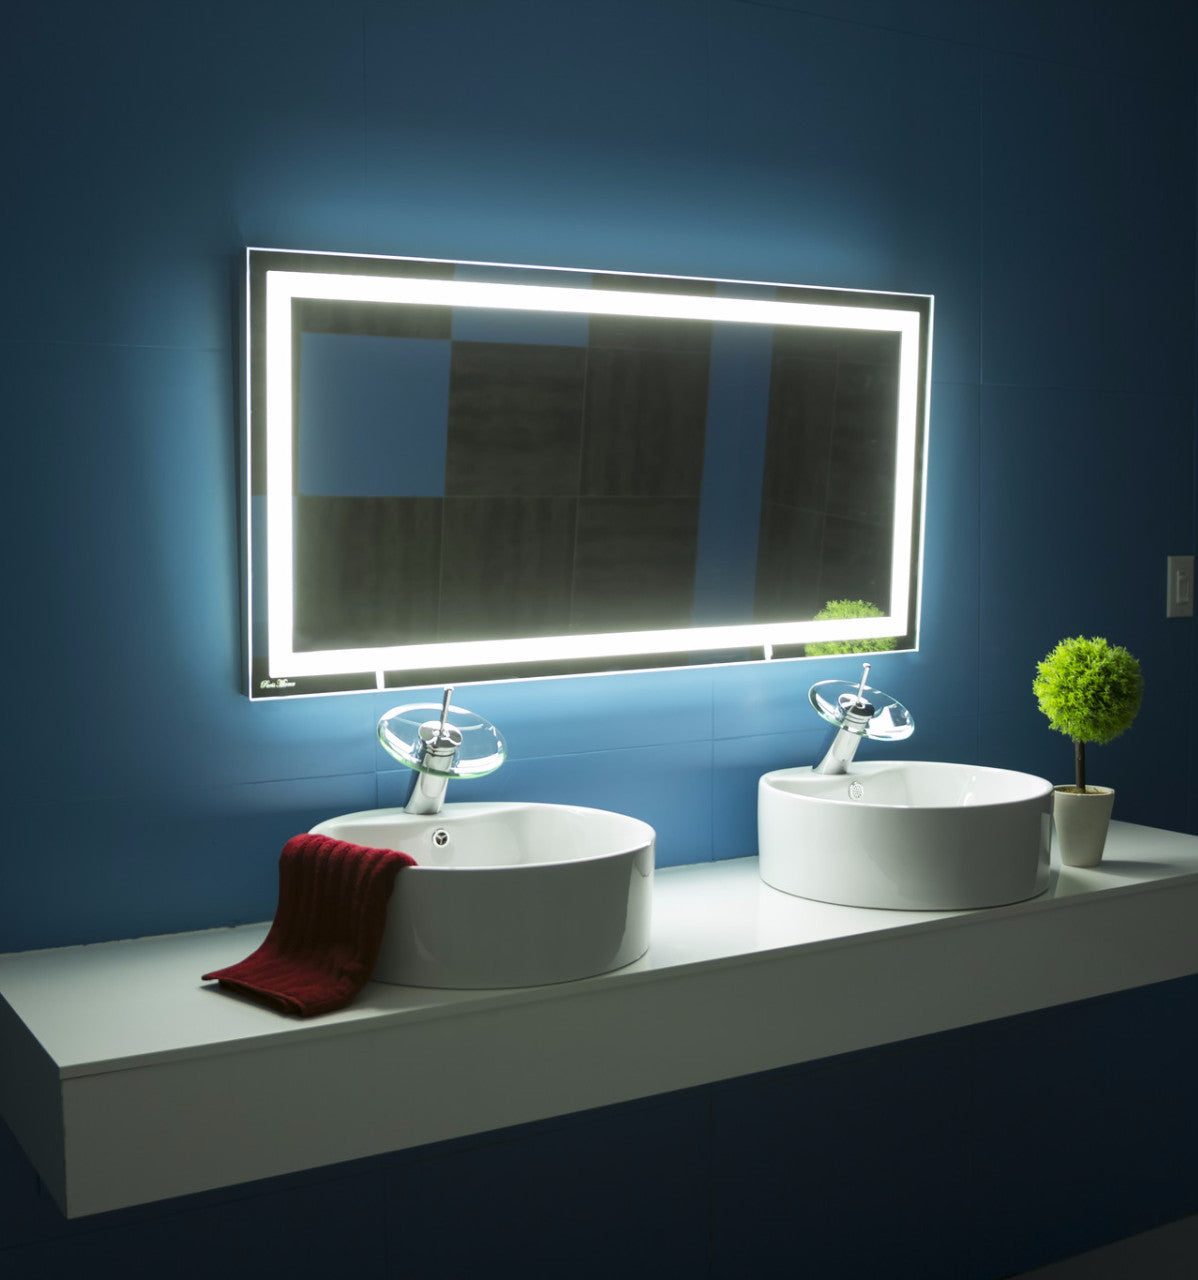 mirror 48 x 24. dimmable lighted mirror harmony 48 x 24 c